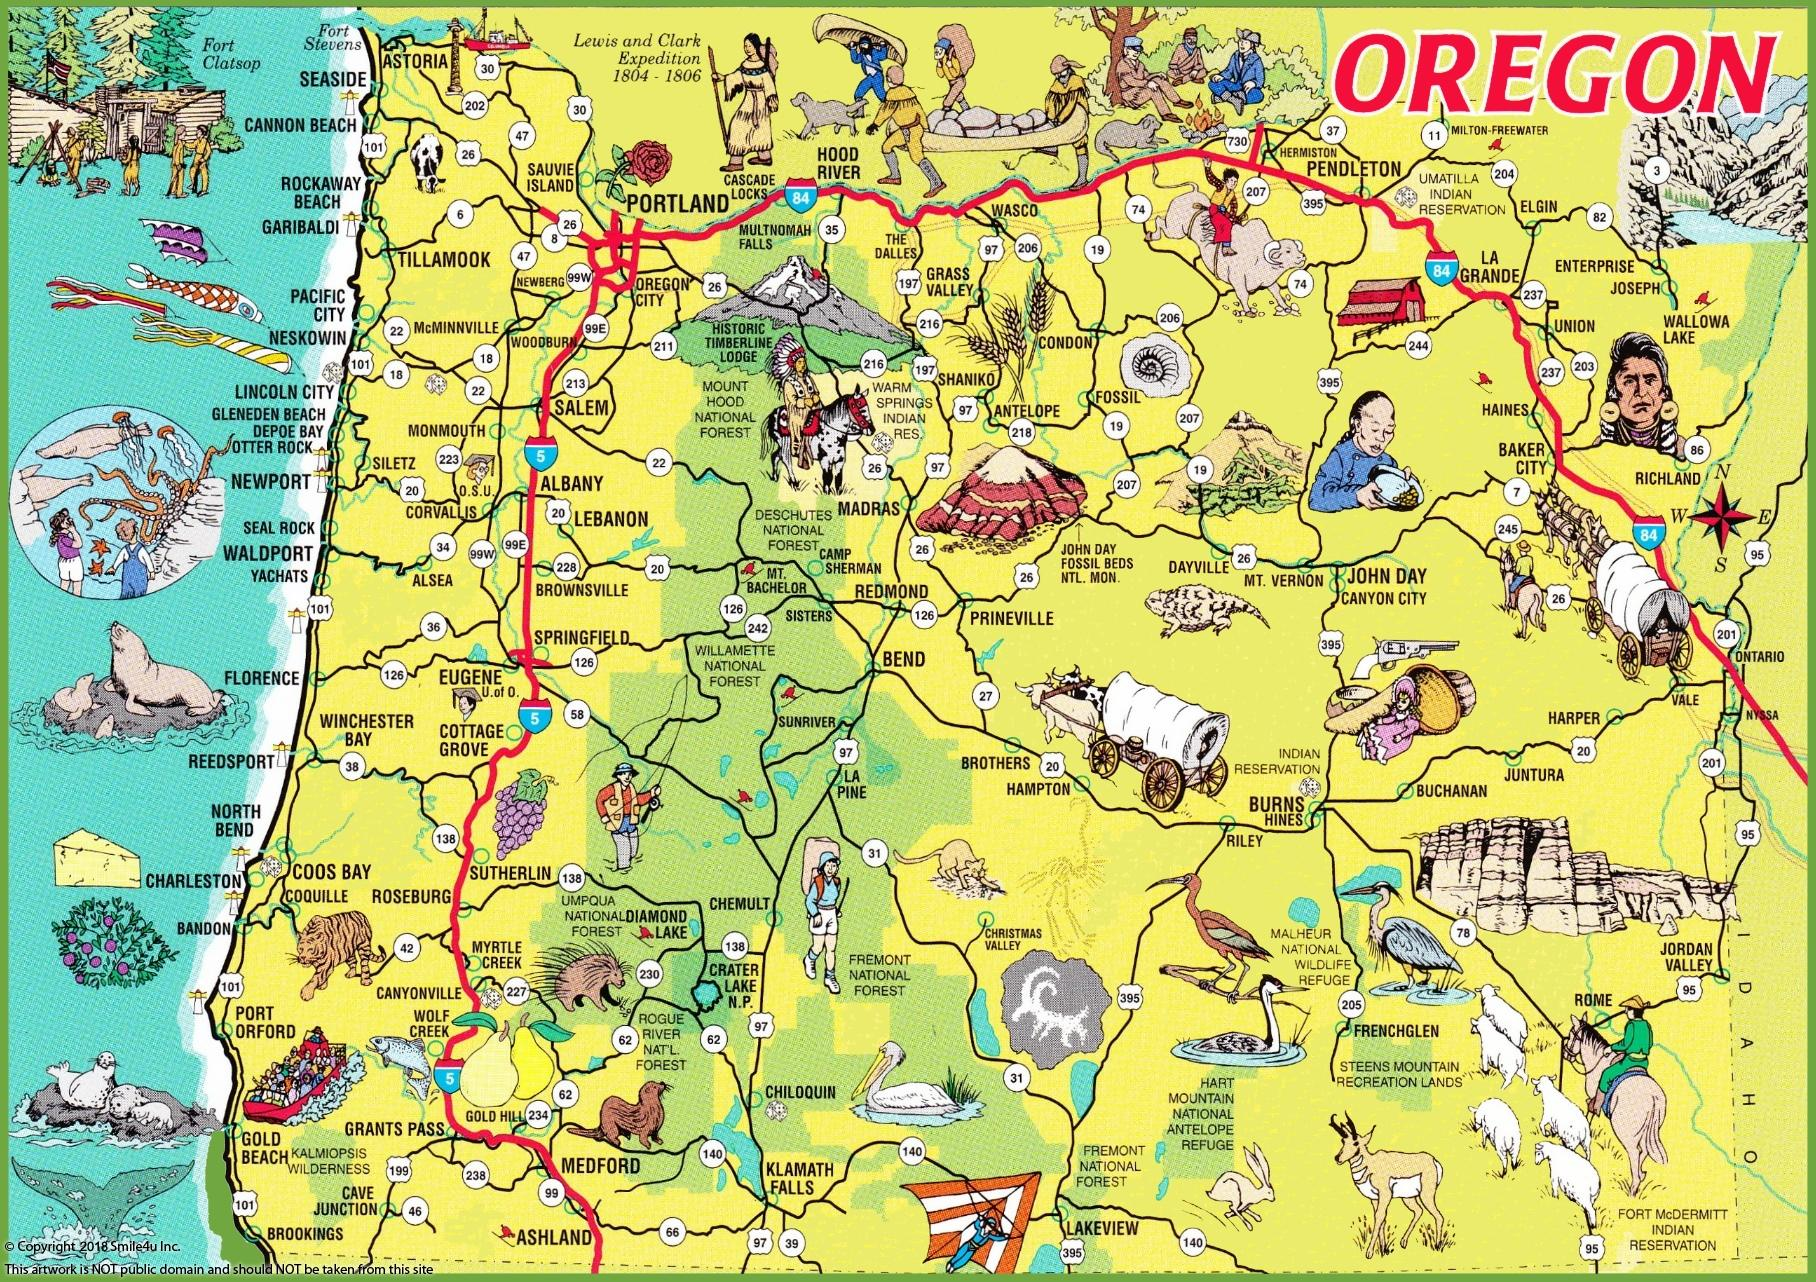 509028_watermarked_pictorial-travel-map-of-oregon.jpg